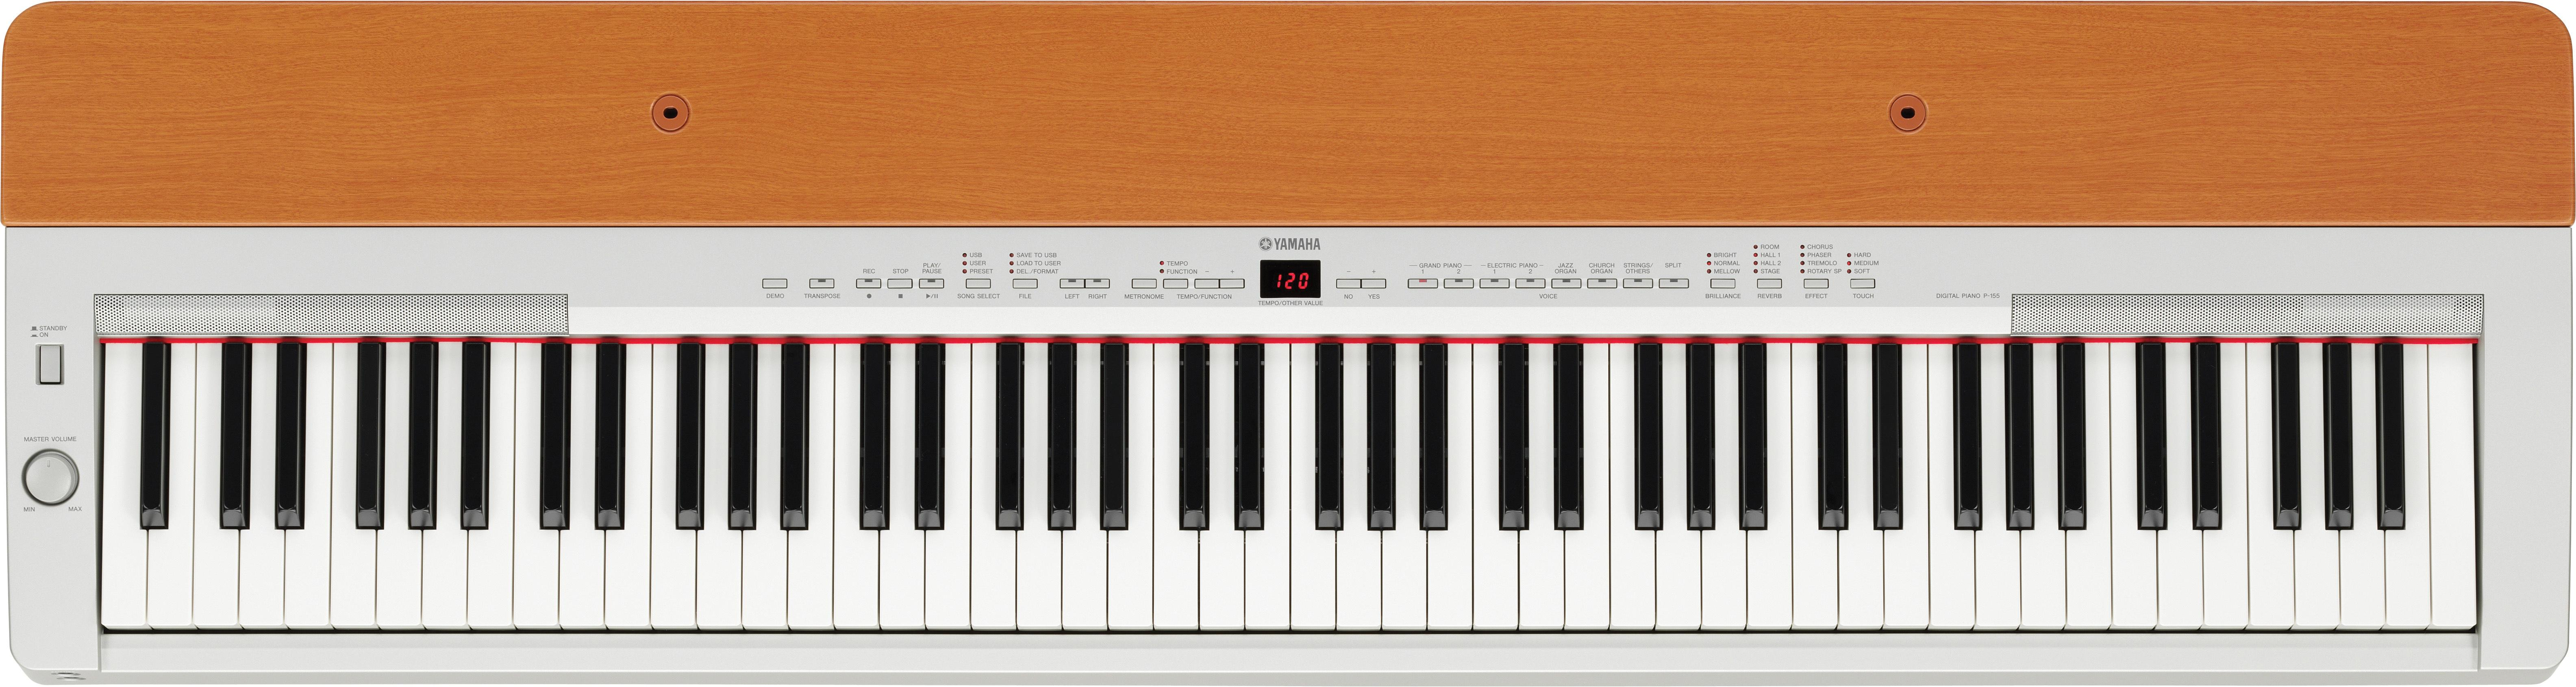 Page not found for Yamaha dgx640c digital piano cherry